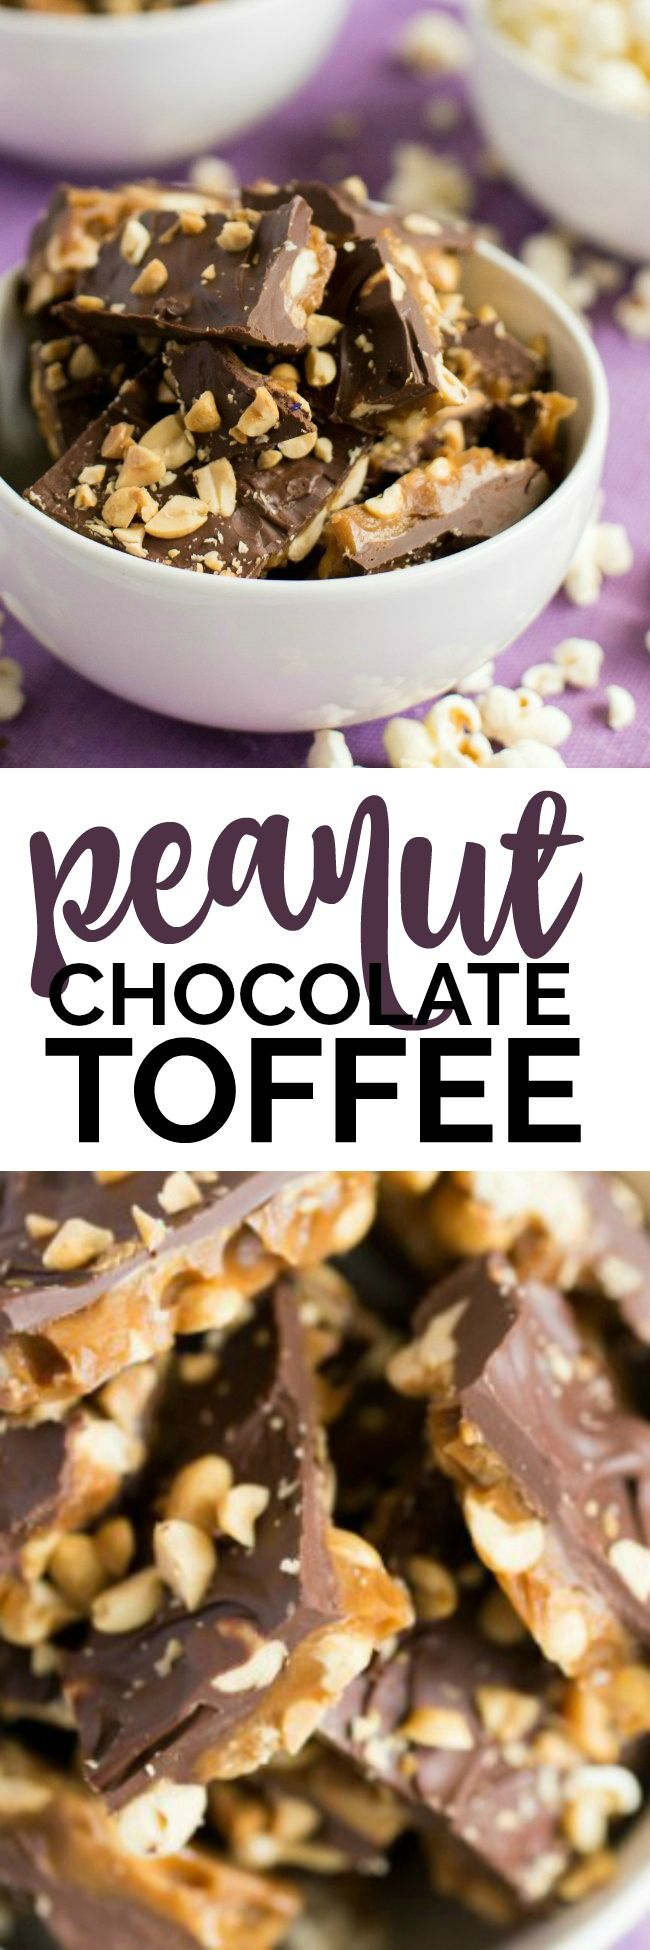 Party Snack Ideas: Peanut Chocolate Toffee @walgreens #SimplyNice #ad